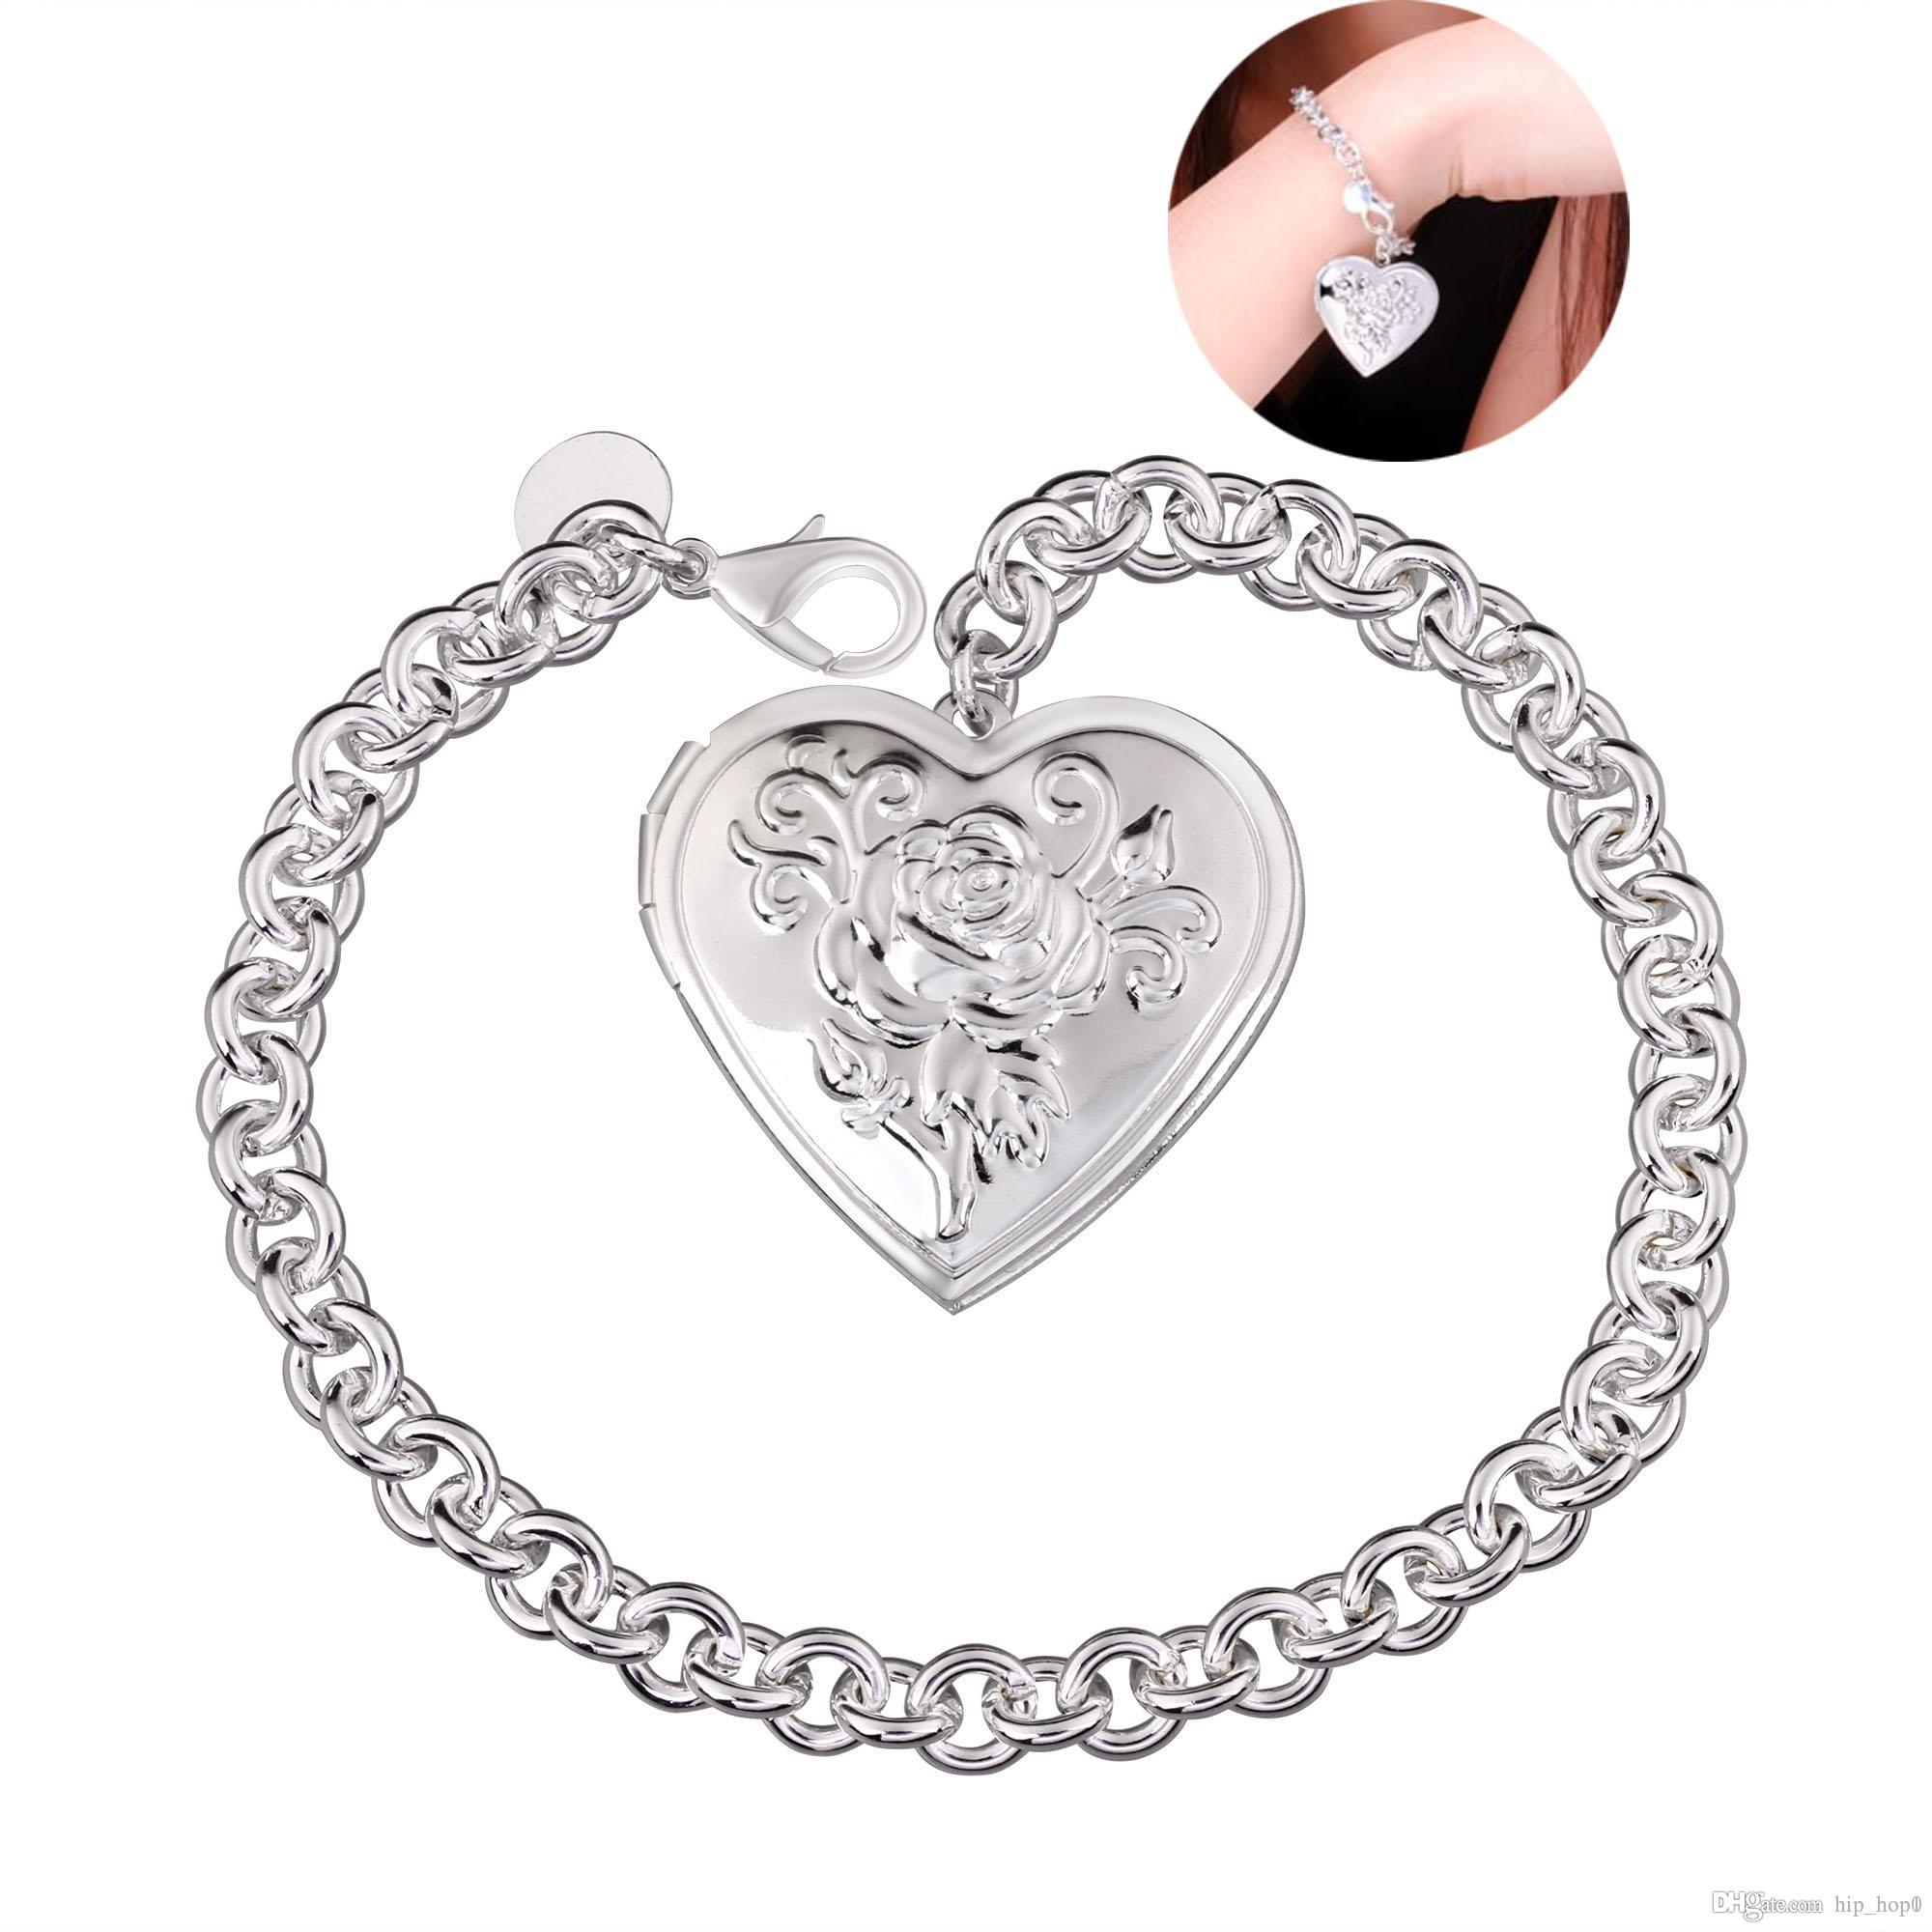 charm necklace chain with ip filigree com shape locket photo round walmart engraved pendant